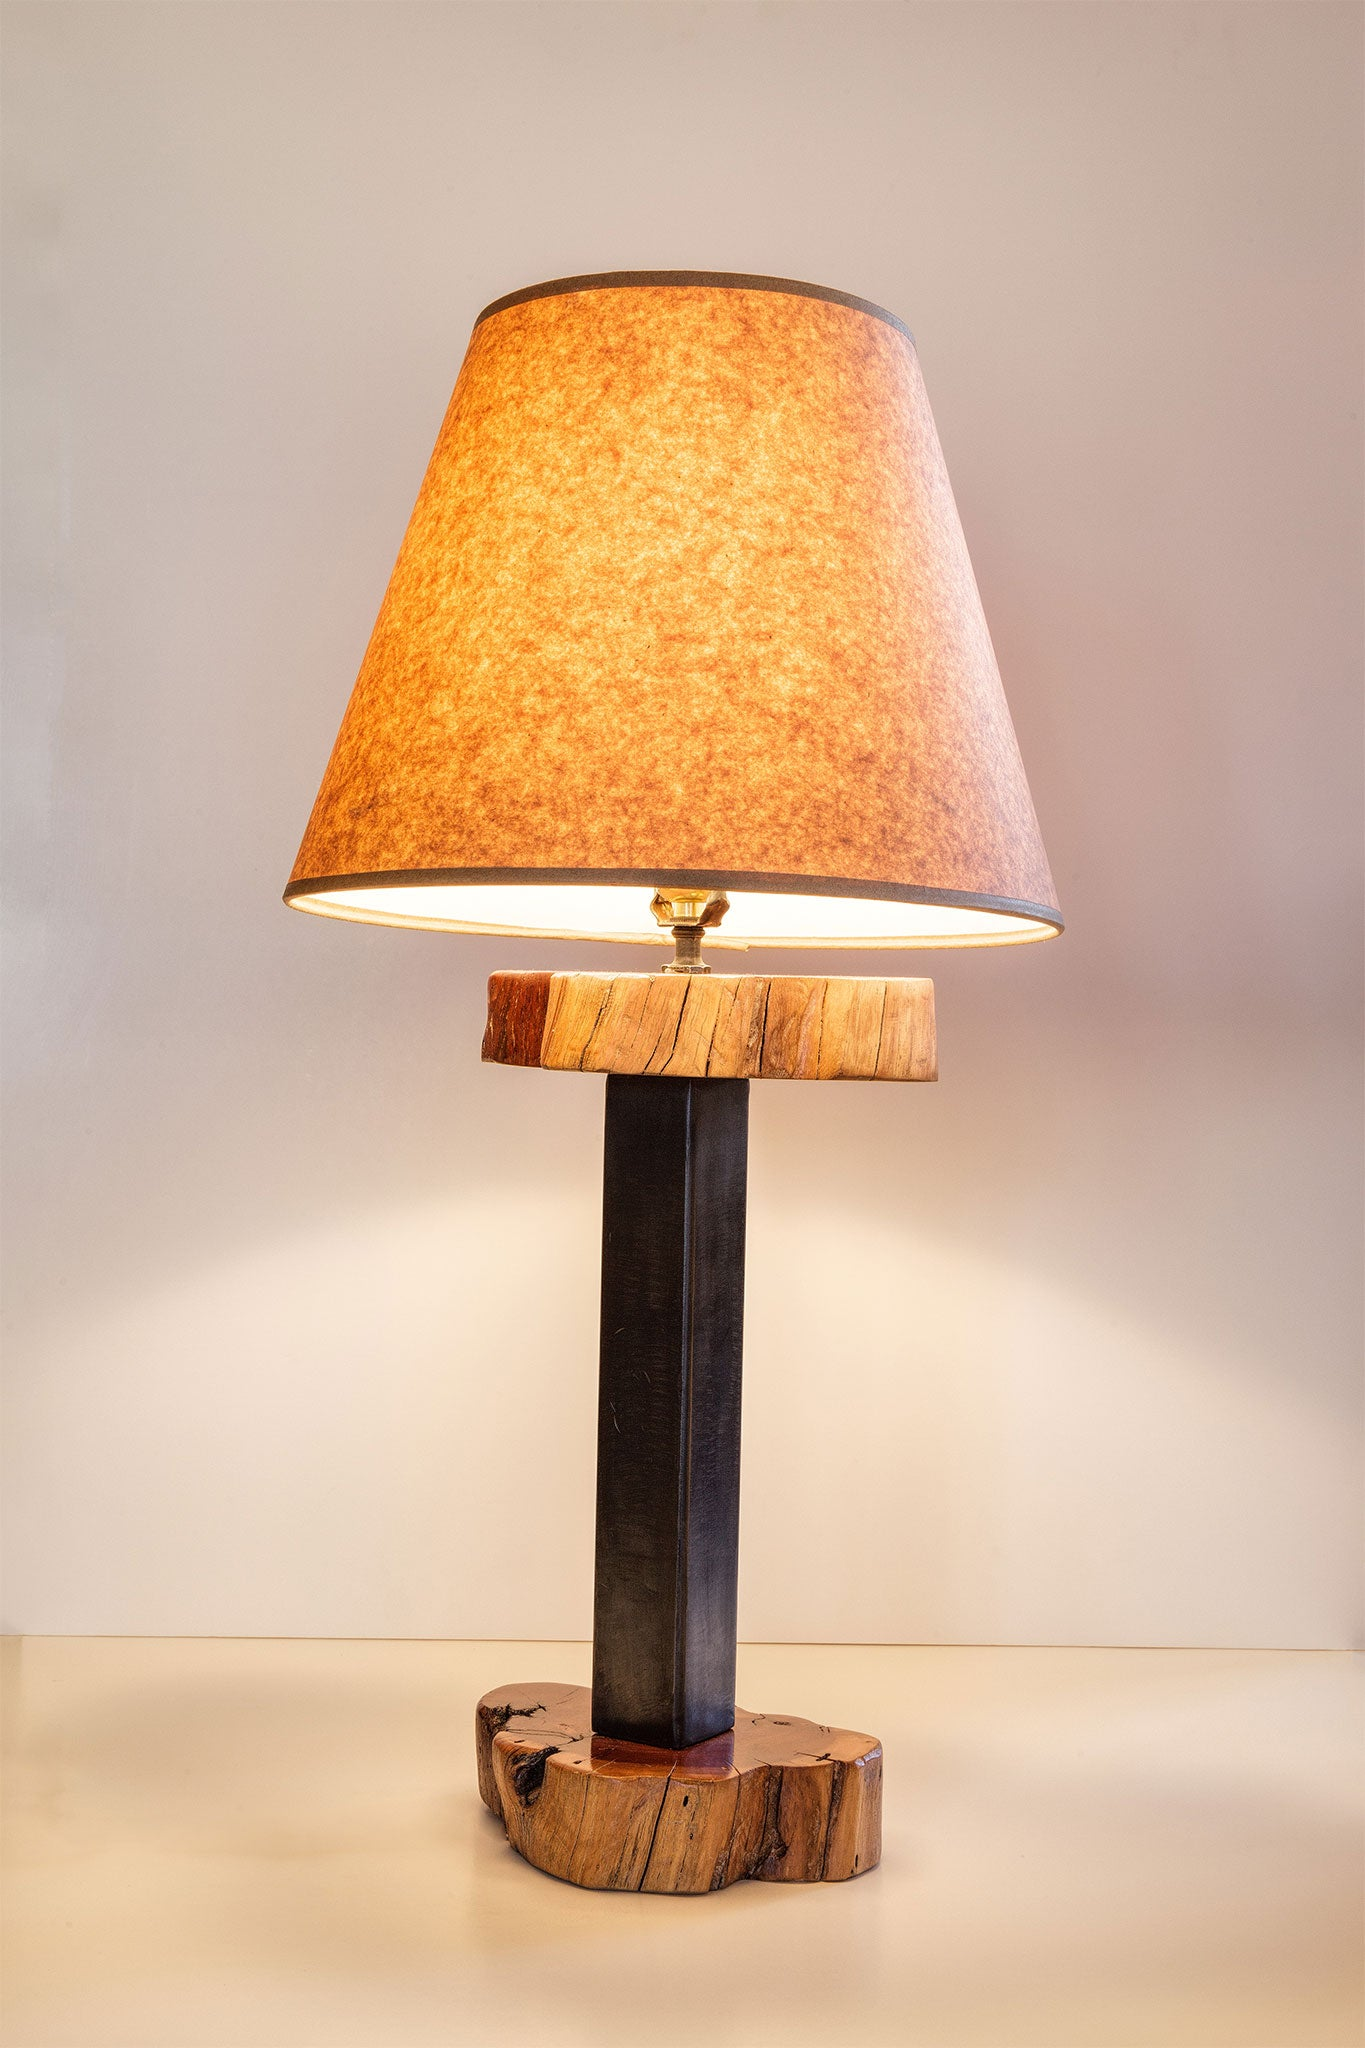 Wood steel table lamp lake tahoe designs wood steel table lamp wood steel table lamp aloadofball Image collections